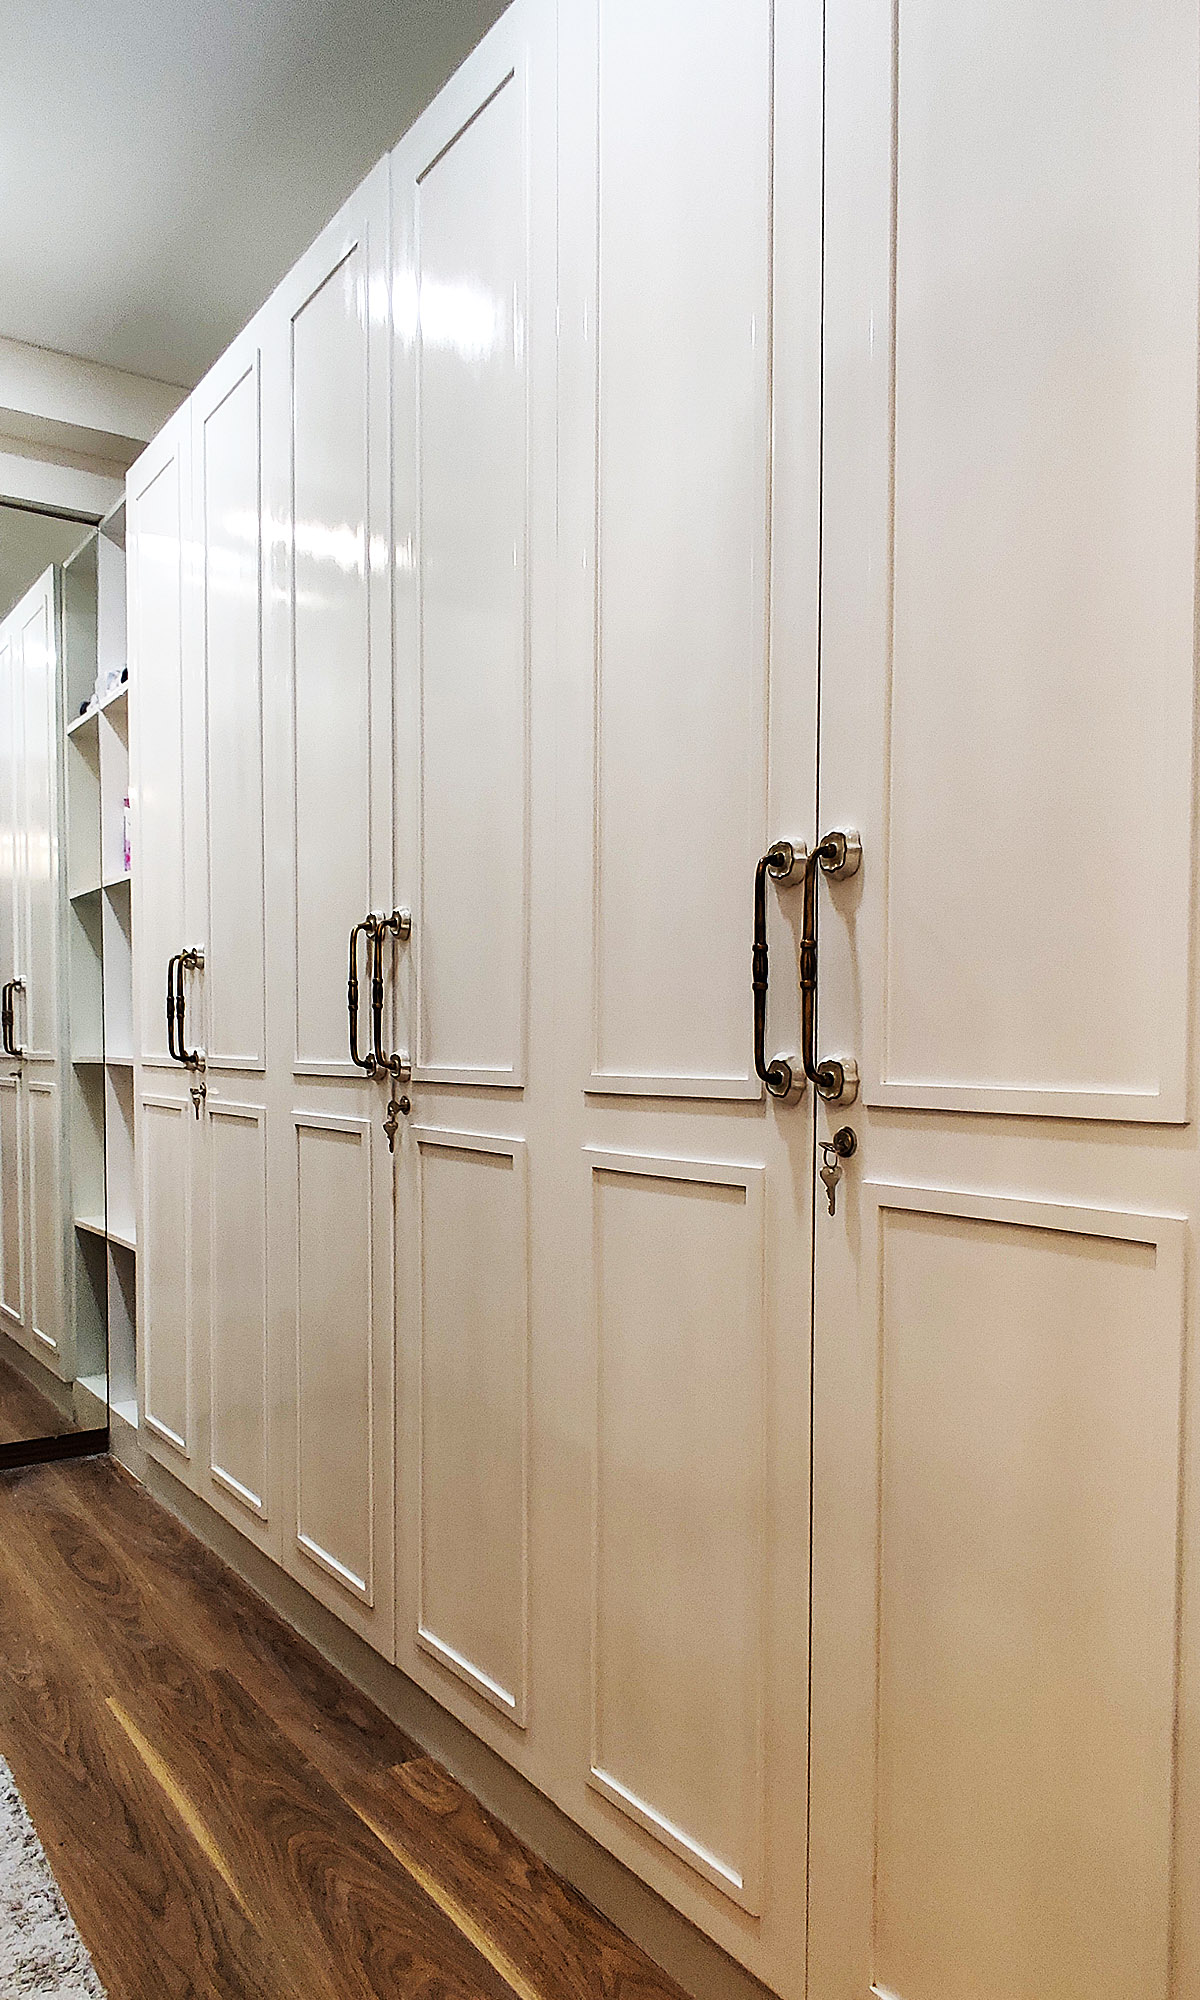 Wardrobes in white with handles